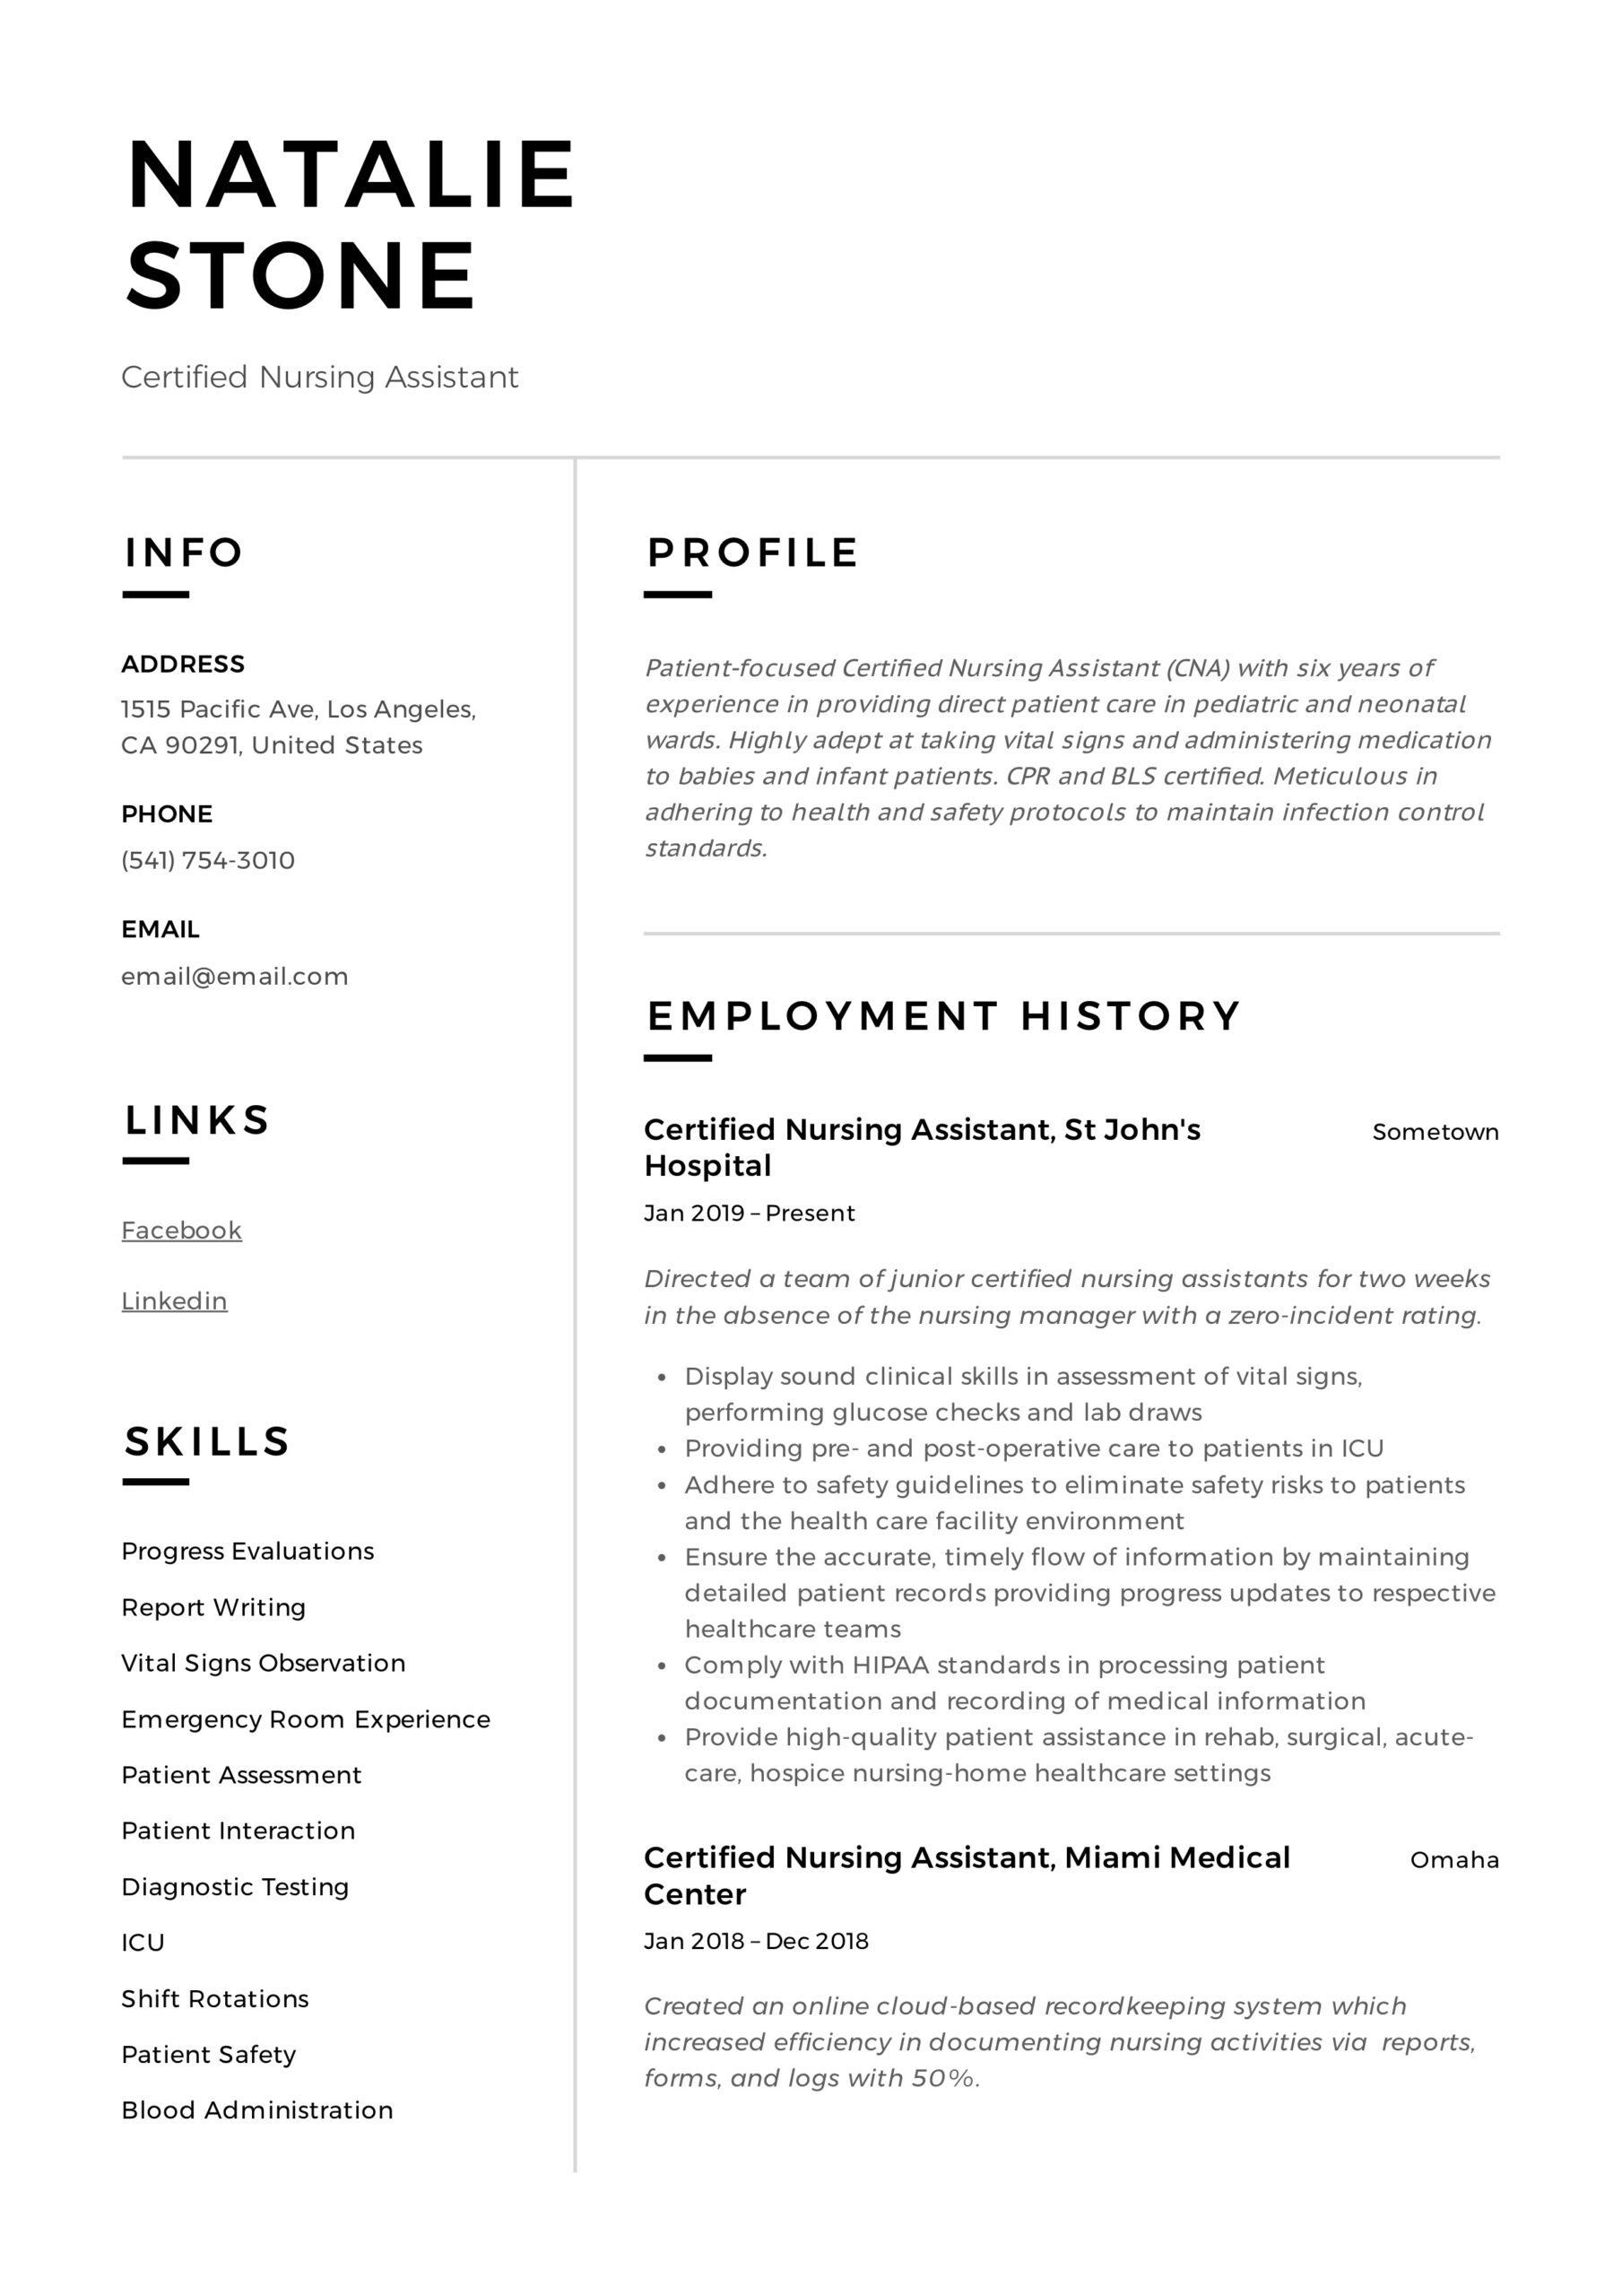 certified nursing assistant resume writing guide templates cna description duties high Resume Cna Description Duties Resume